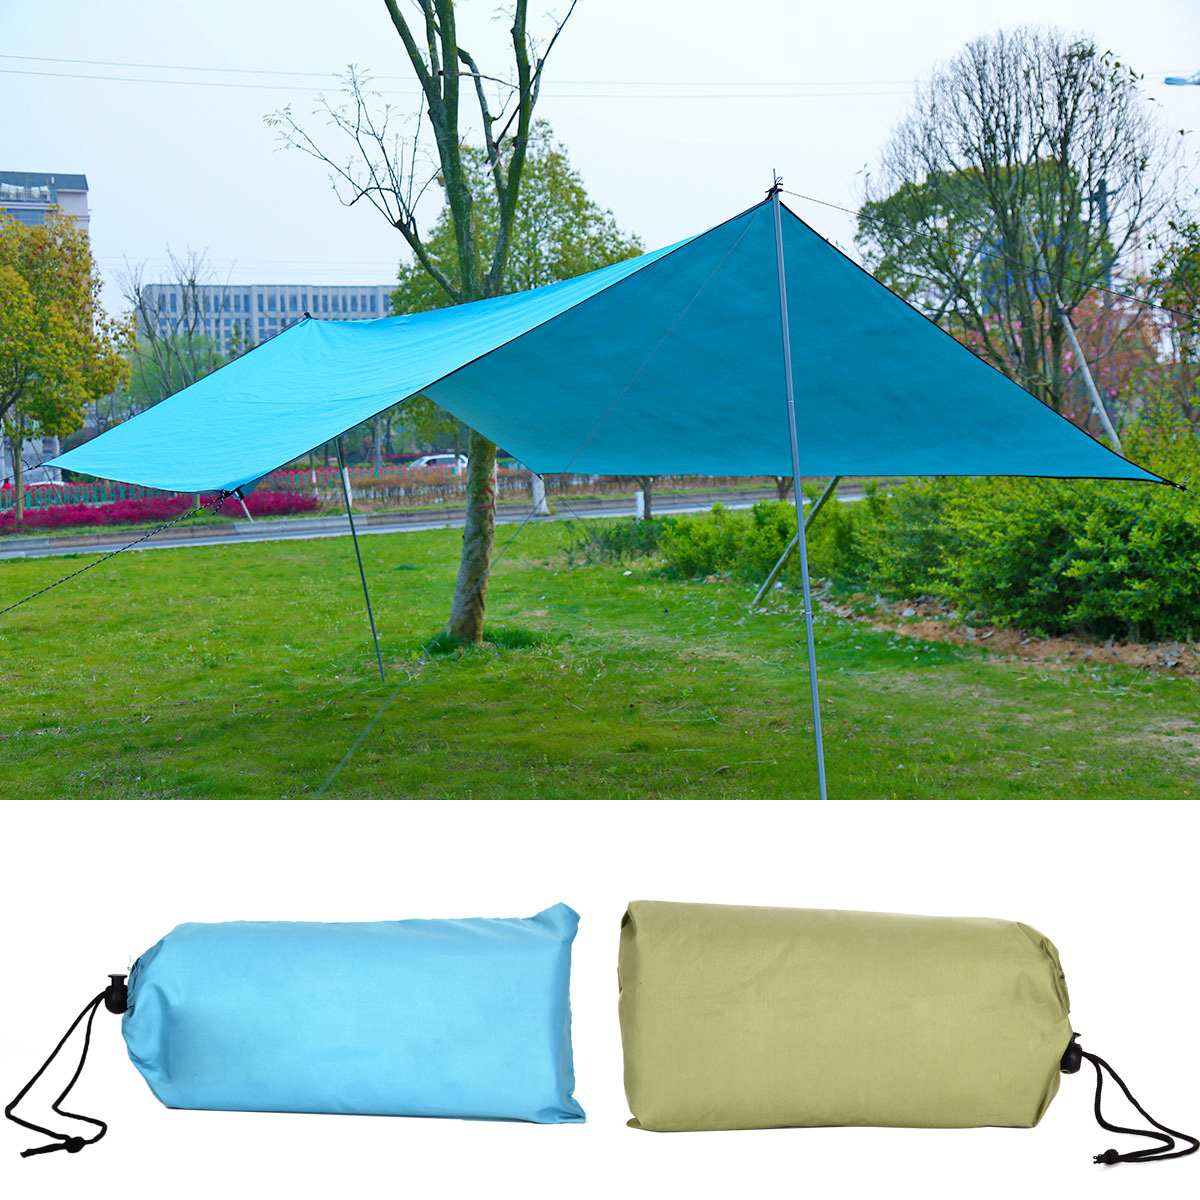 sun shade sail square 10 39 x10 39 waterproof uv block outdoor shelter canopy cover ebay. Black Bedroom Furniture Sets. Home Design Ideas